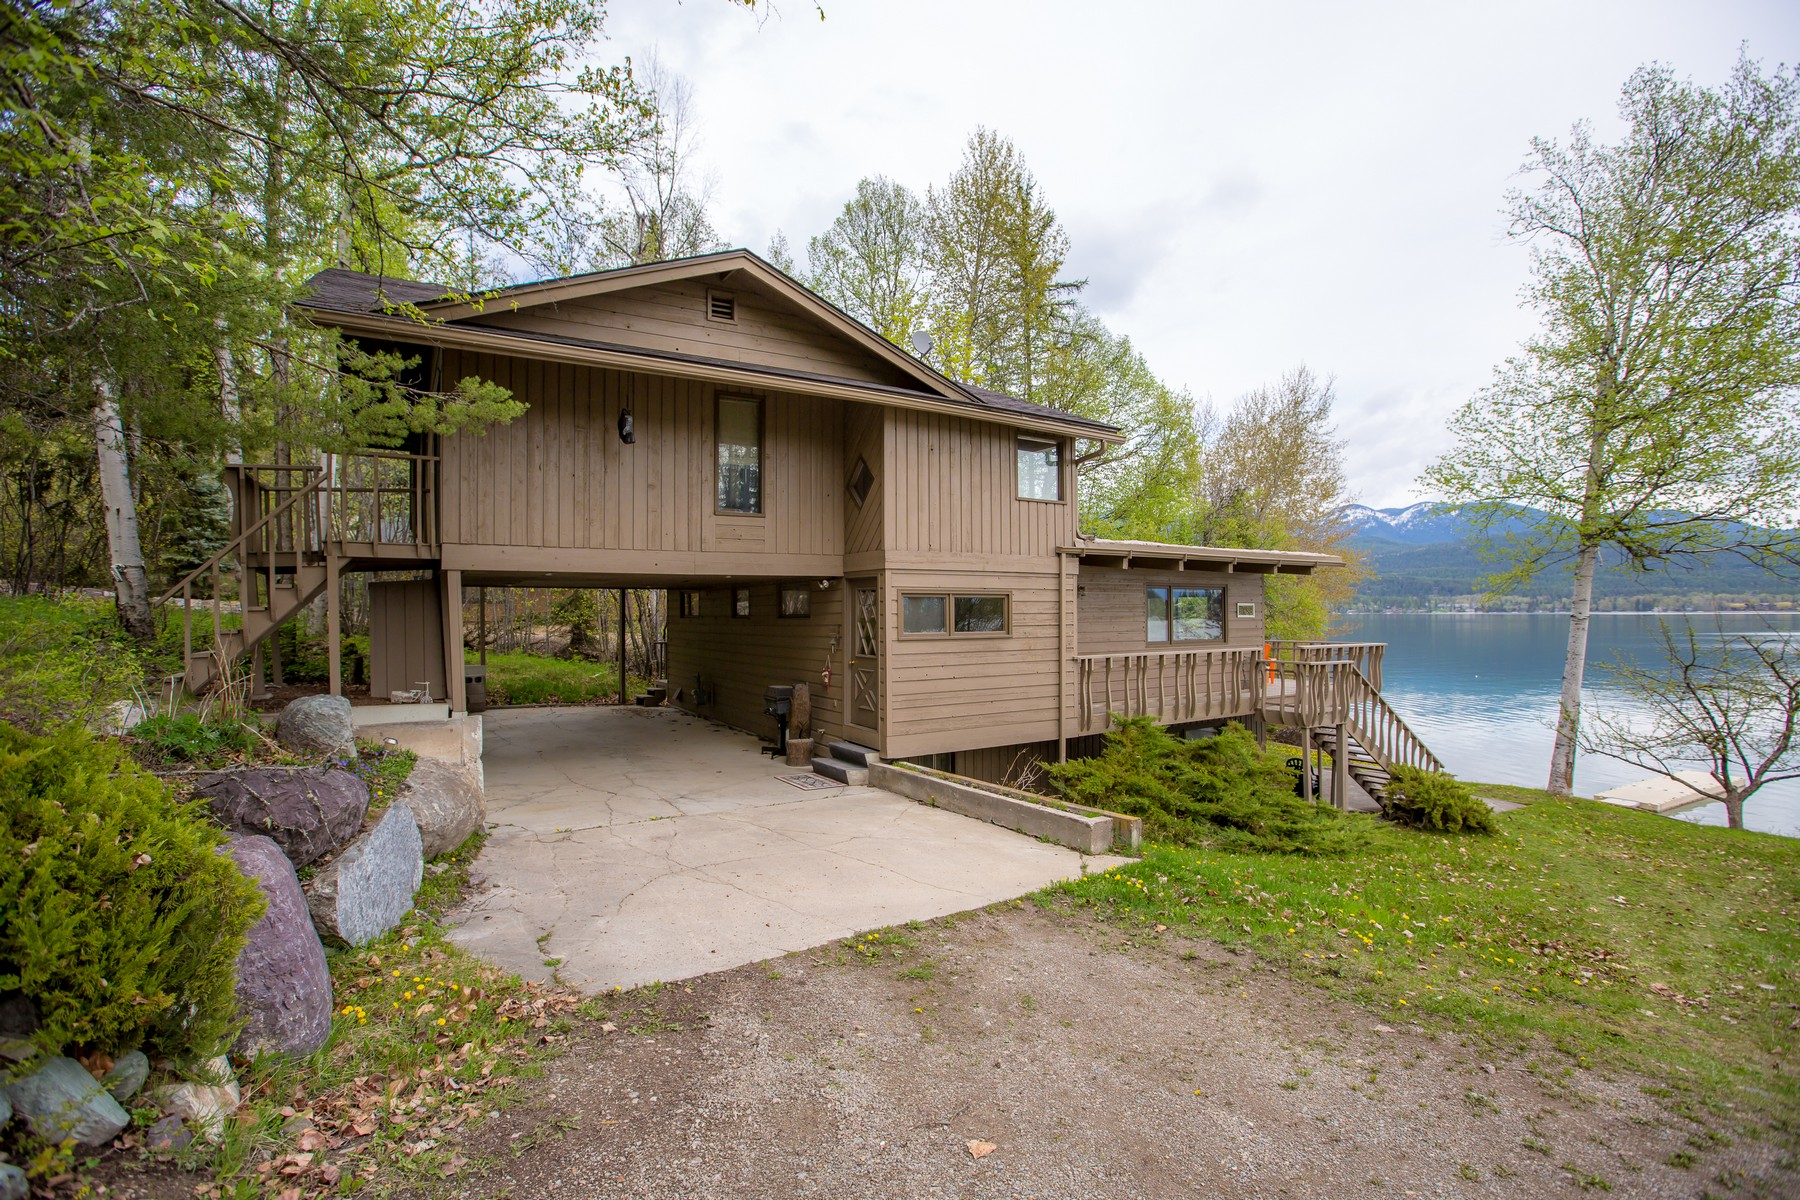 Single Family Home for Sale at 1504 W Lakeshore Dr , Whitefish, MT 59937 Whitefish, Montana, 59937 United States